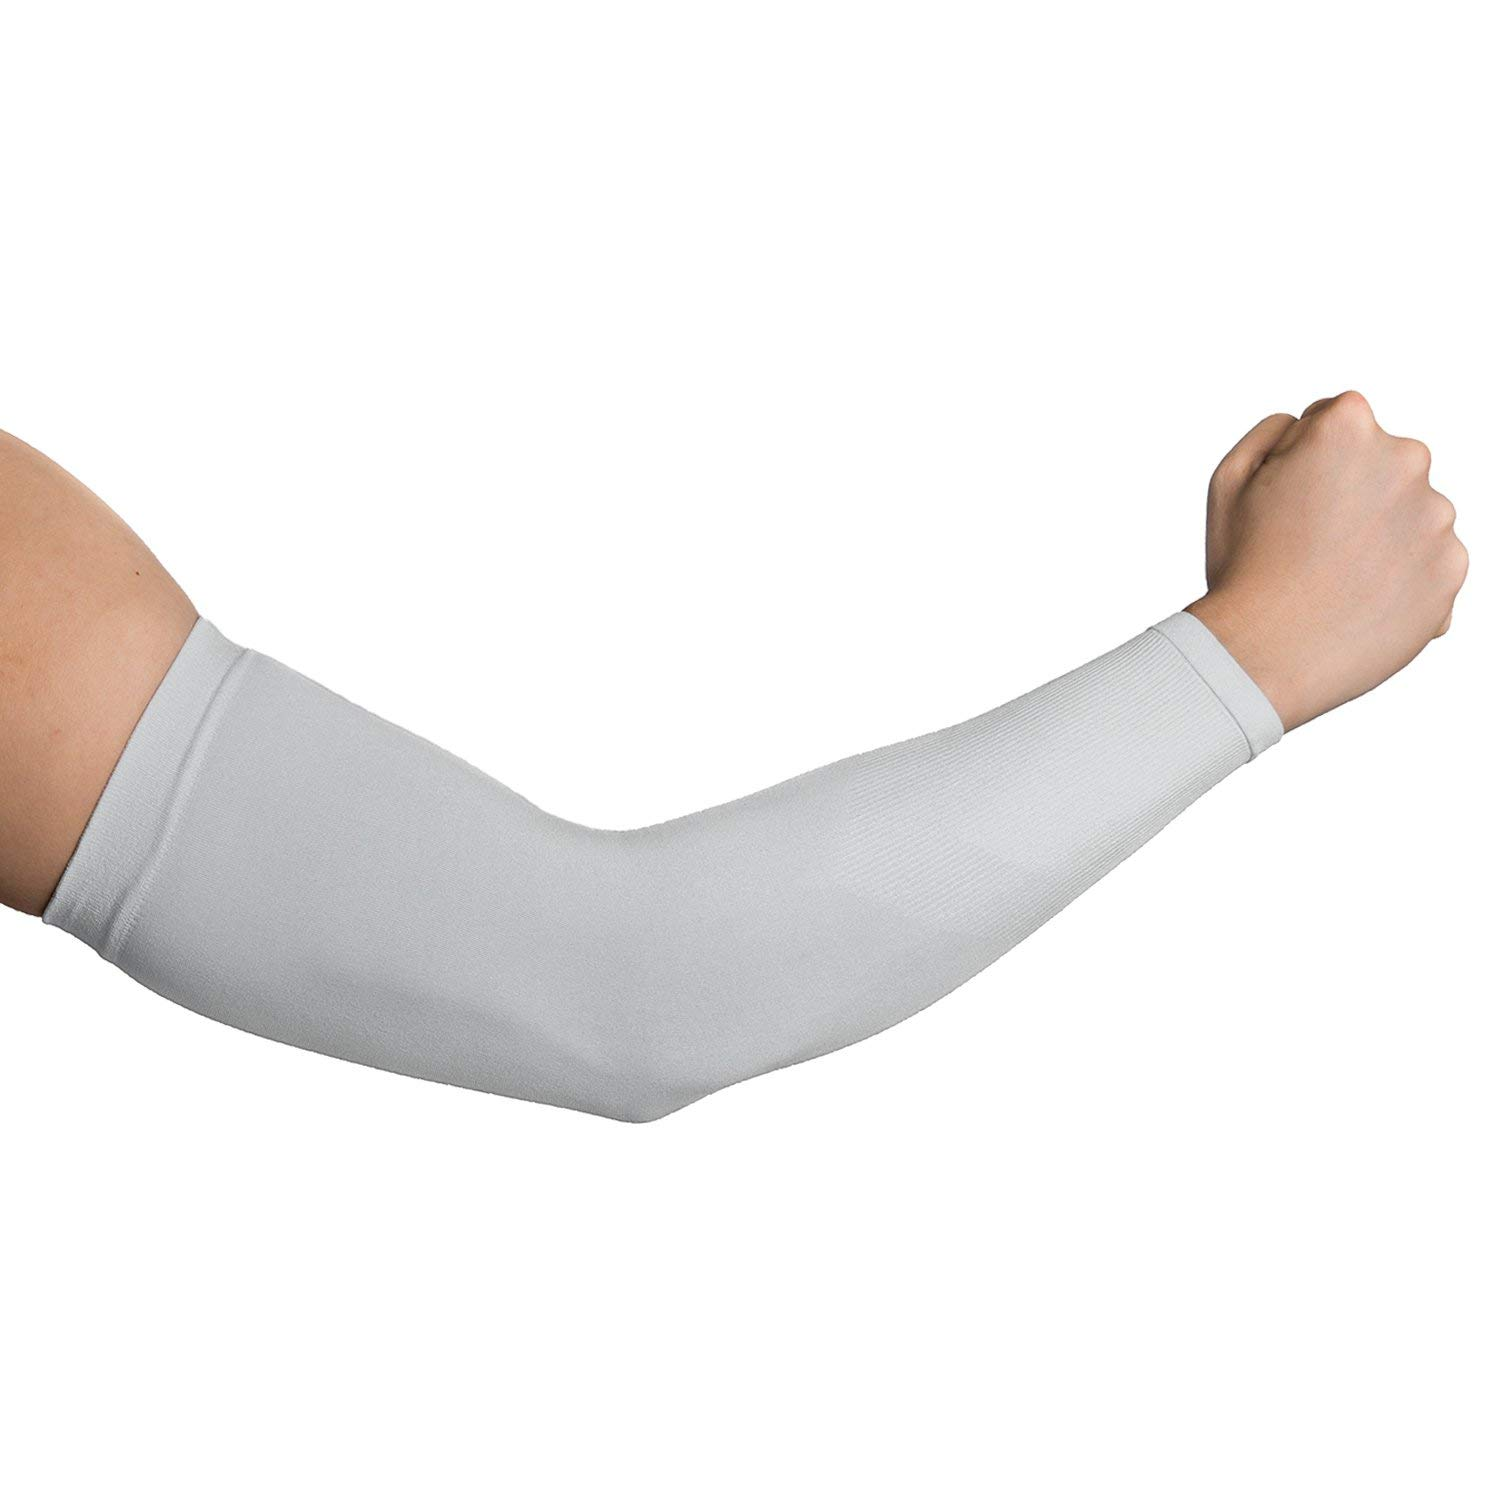 1 Pairs Cooling Arm Sleeves Outdoor Sport Basketball UV Sun Protection Arm Cover